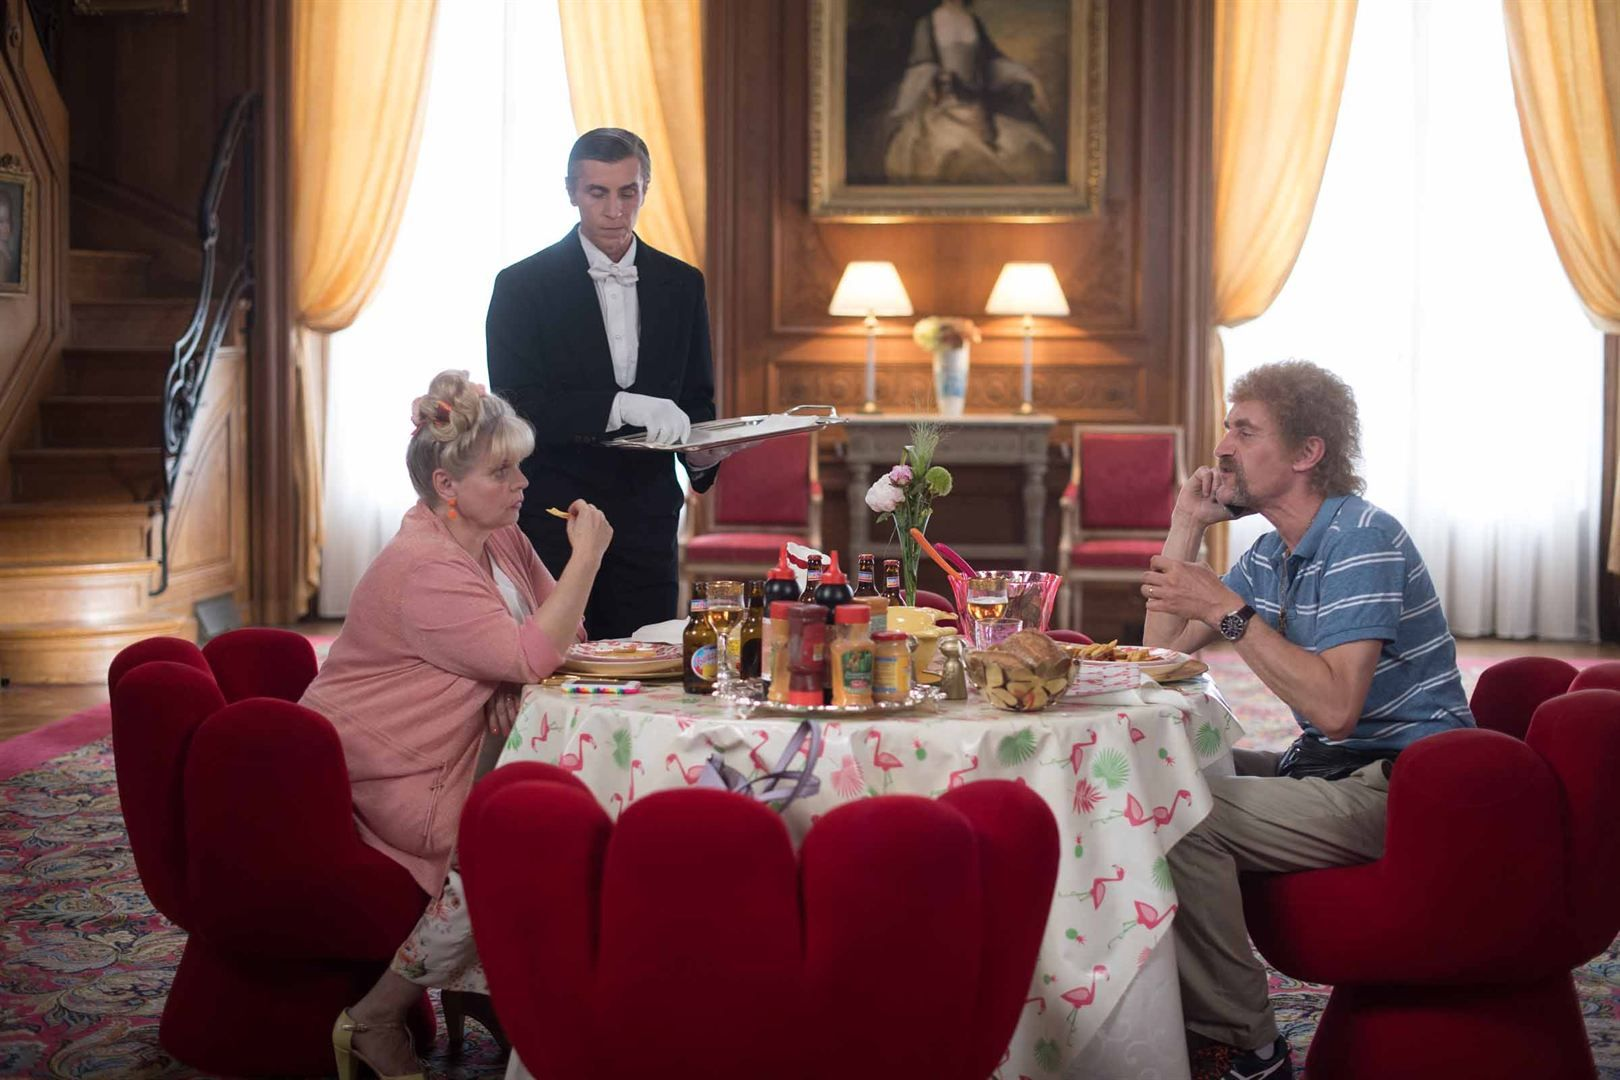 Les Tuches 2 Streaming Complet En Vf